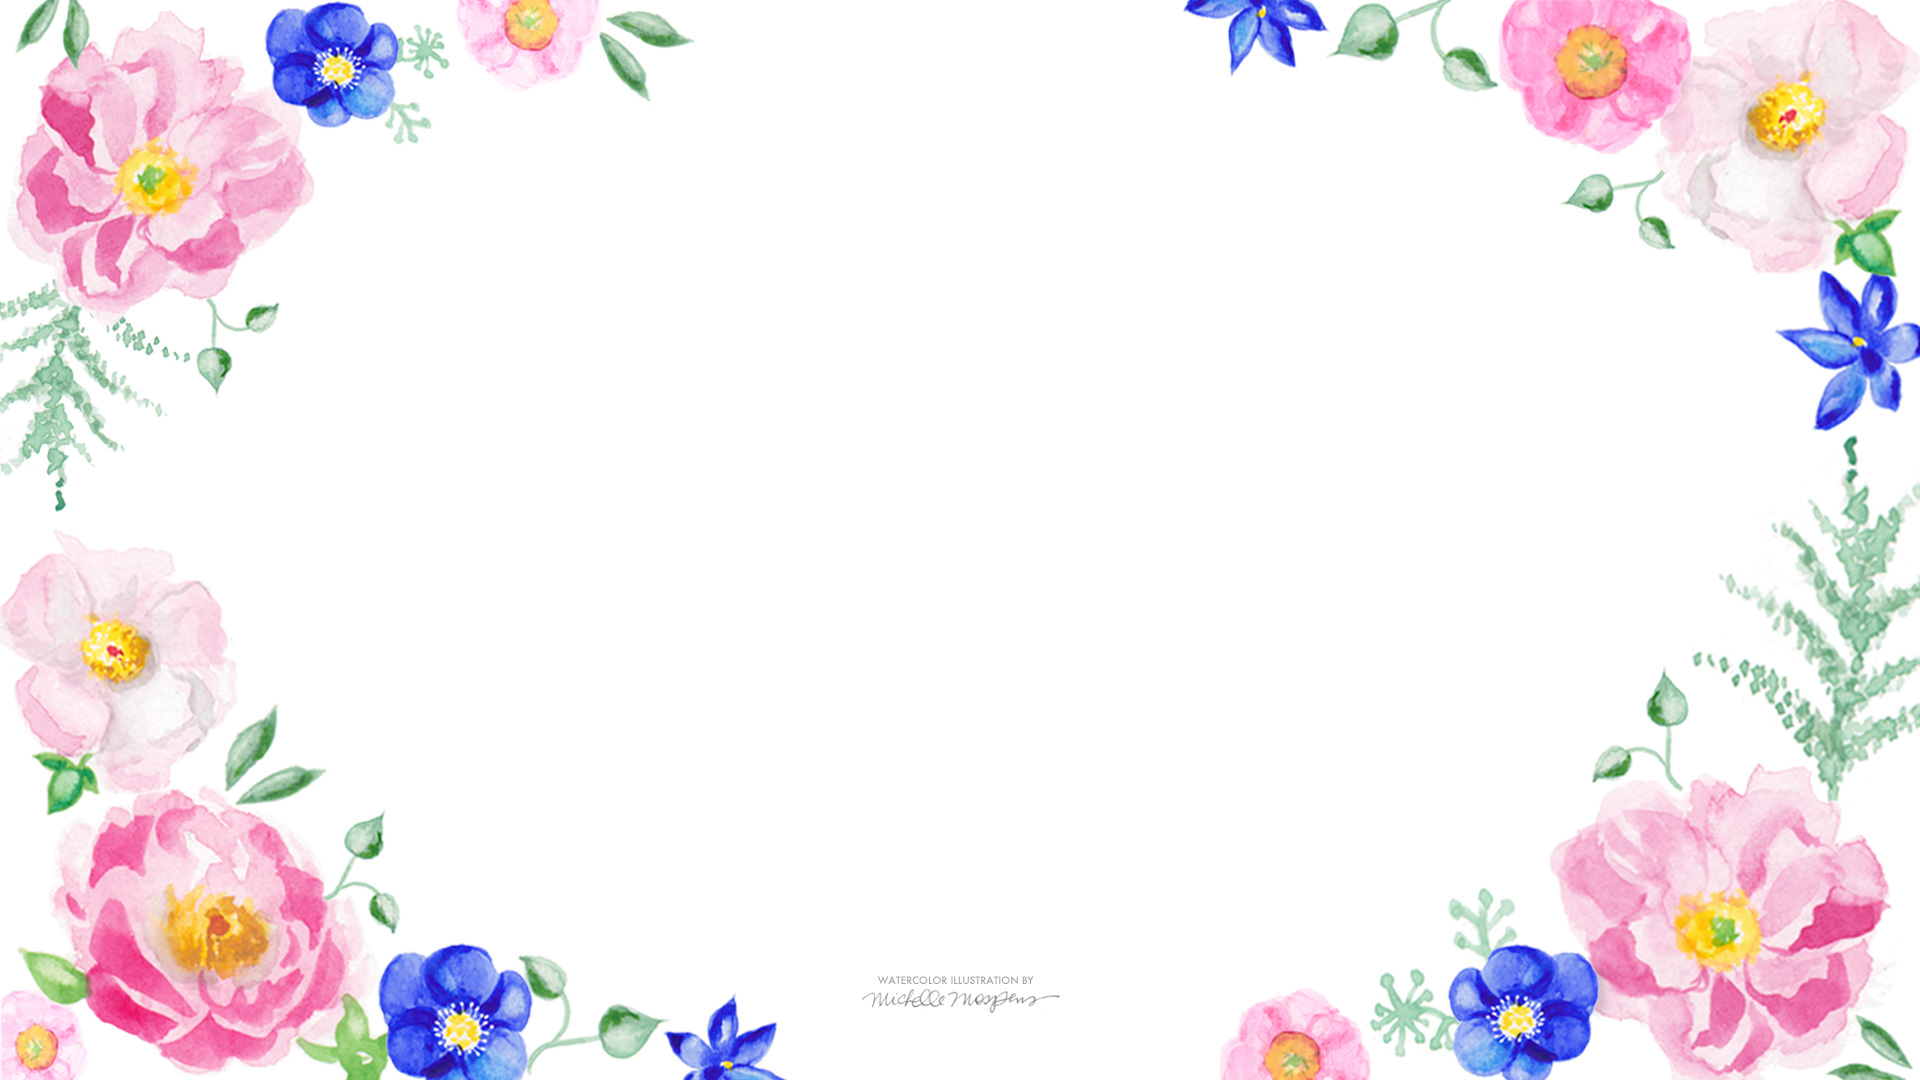 flower painting watercolor wallpaper - photo #40